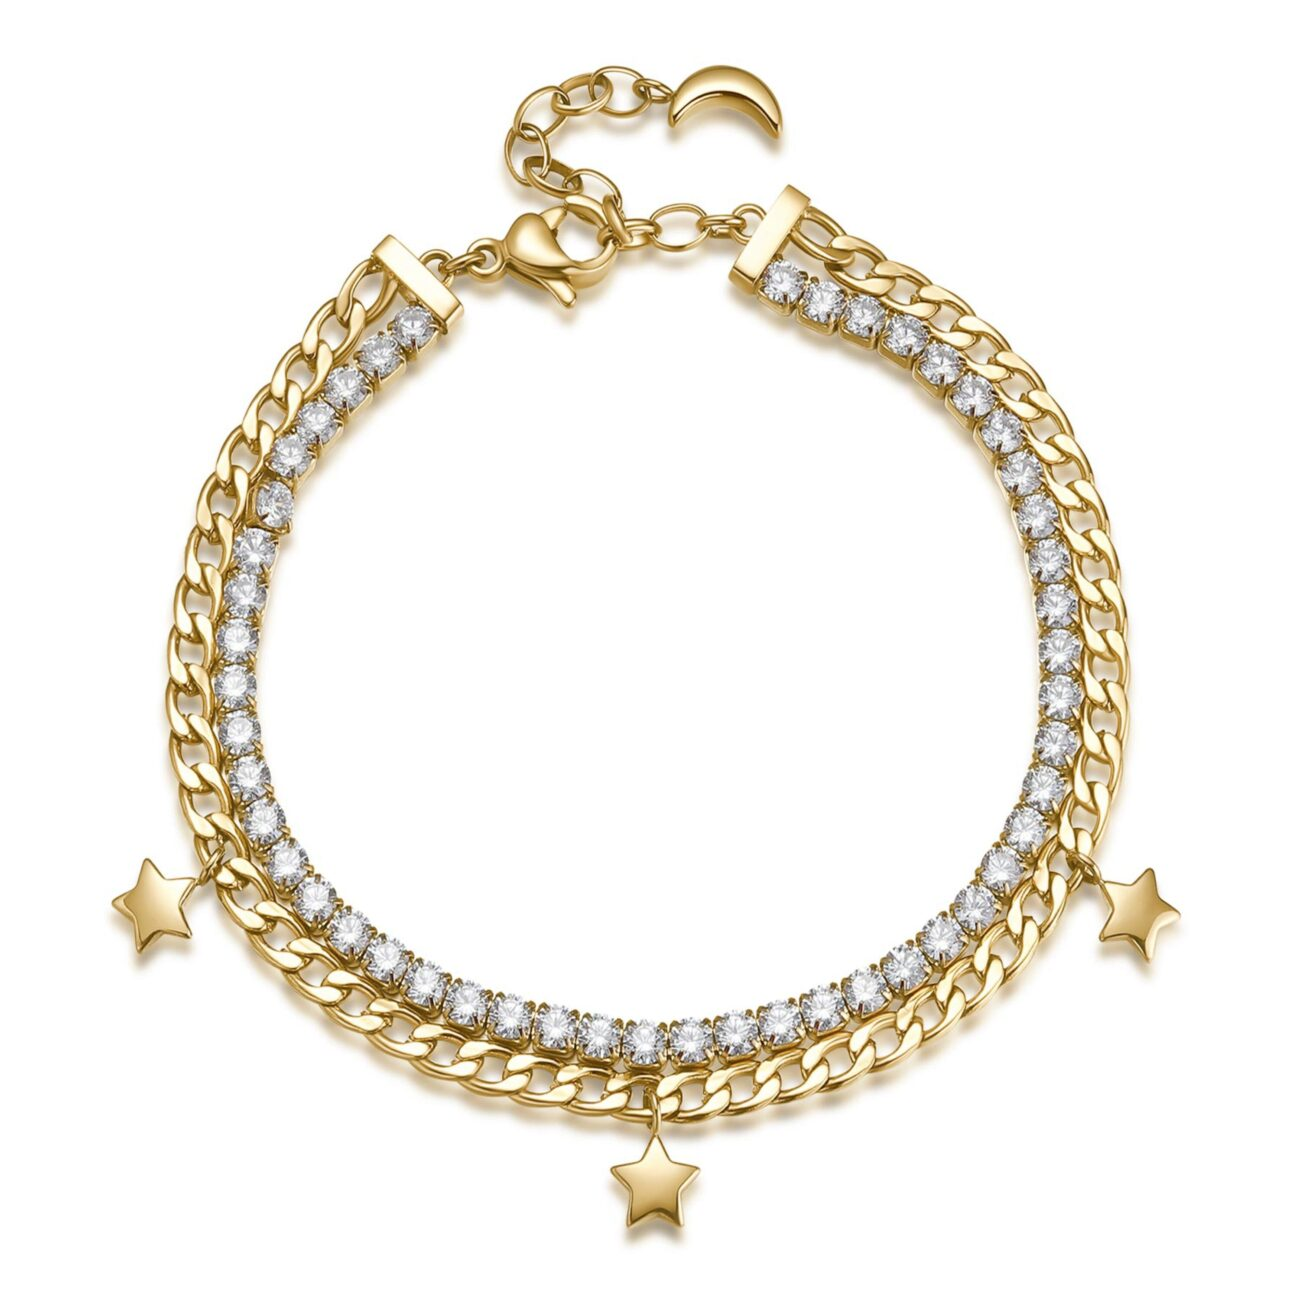 304 stainless steel double tennis bracelet and gold finishes with white cubic zirconia, crystals and star pendants.